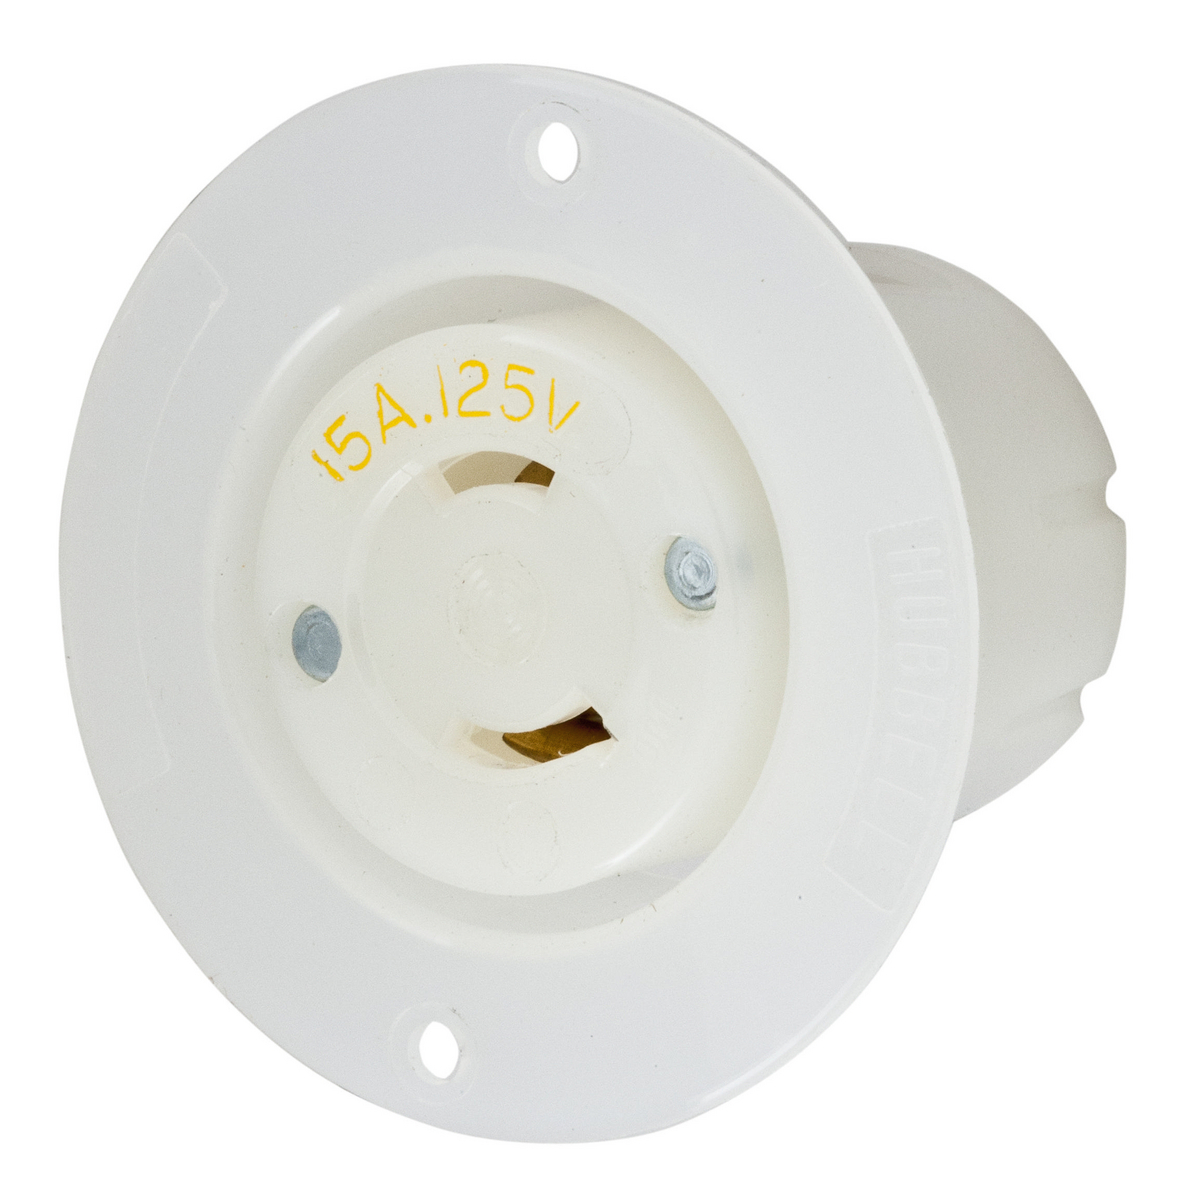 Hubbell HBL7526C 15 Amp 125 Volt 2-Pole 2-Wire NEMA L1-15R White Locking Flanged Receptacle